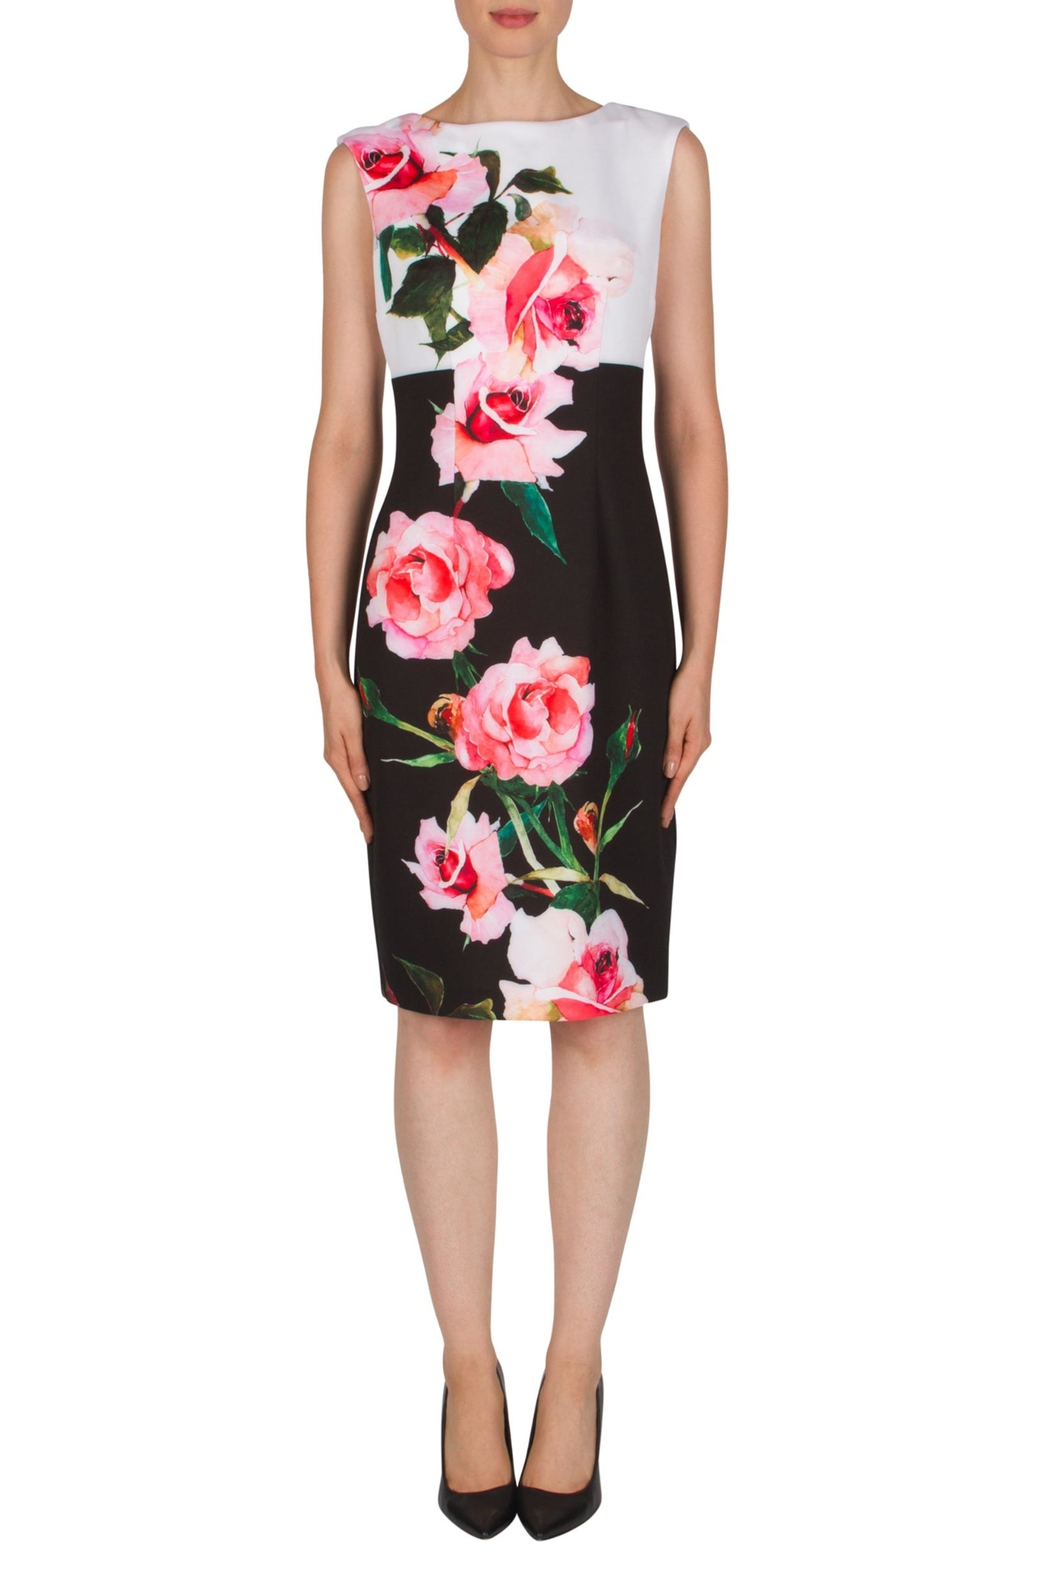 Joseph Ribkoff Floral Back-Zip Dress - Front Cropped Image